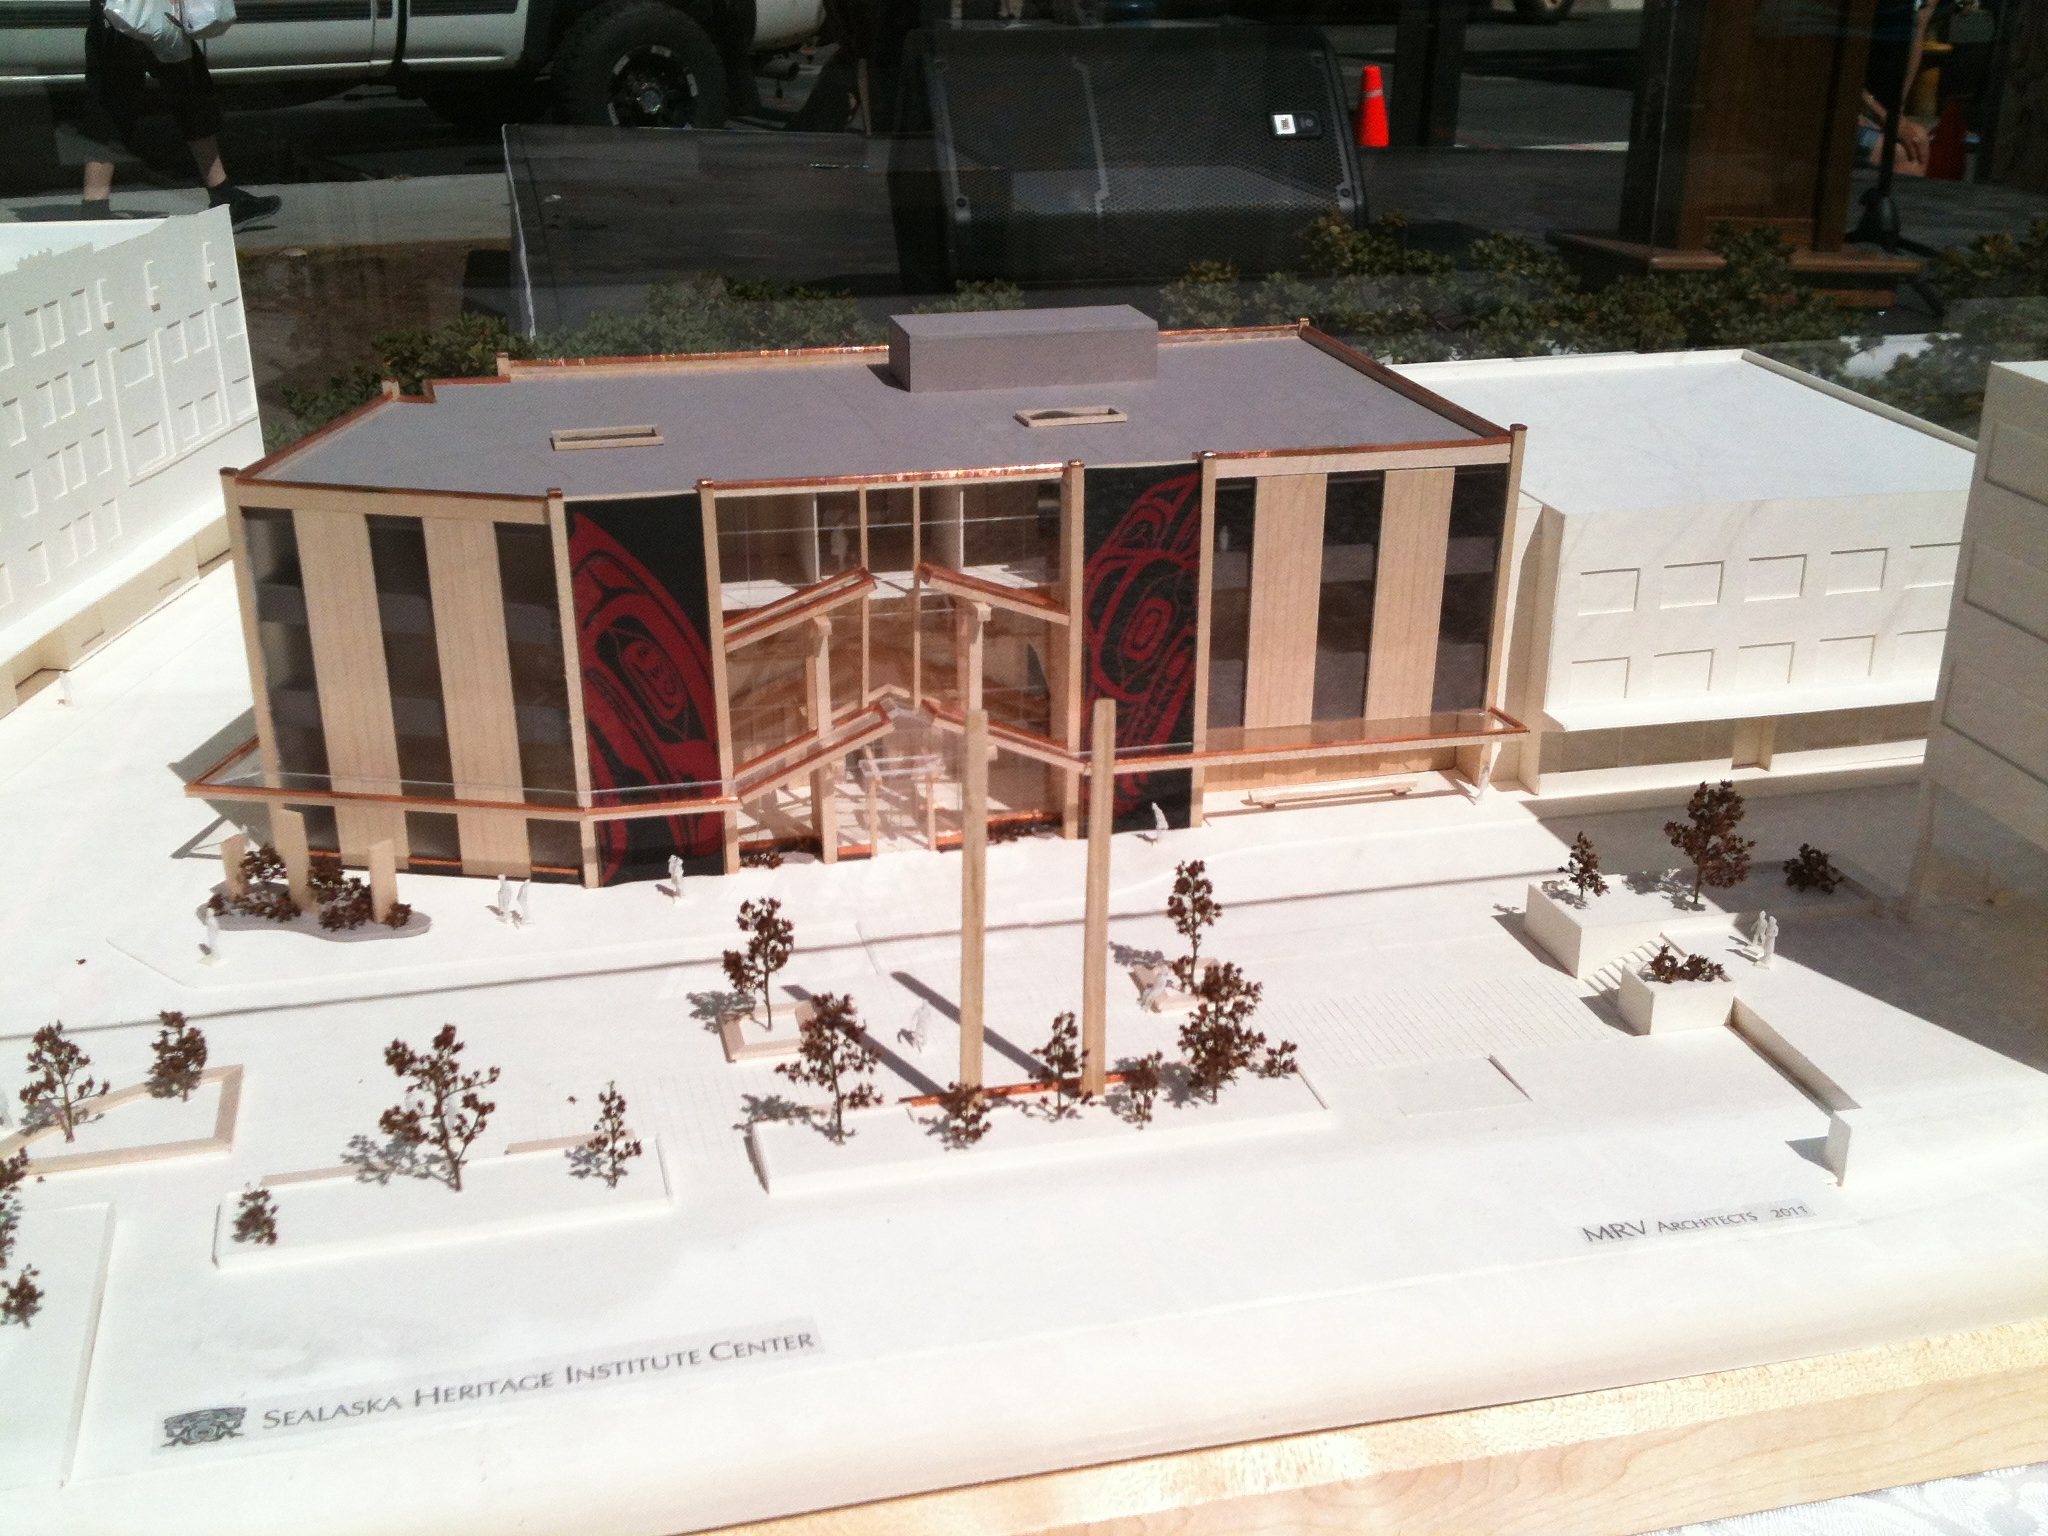 Walter Soboleff Center model